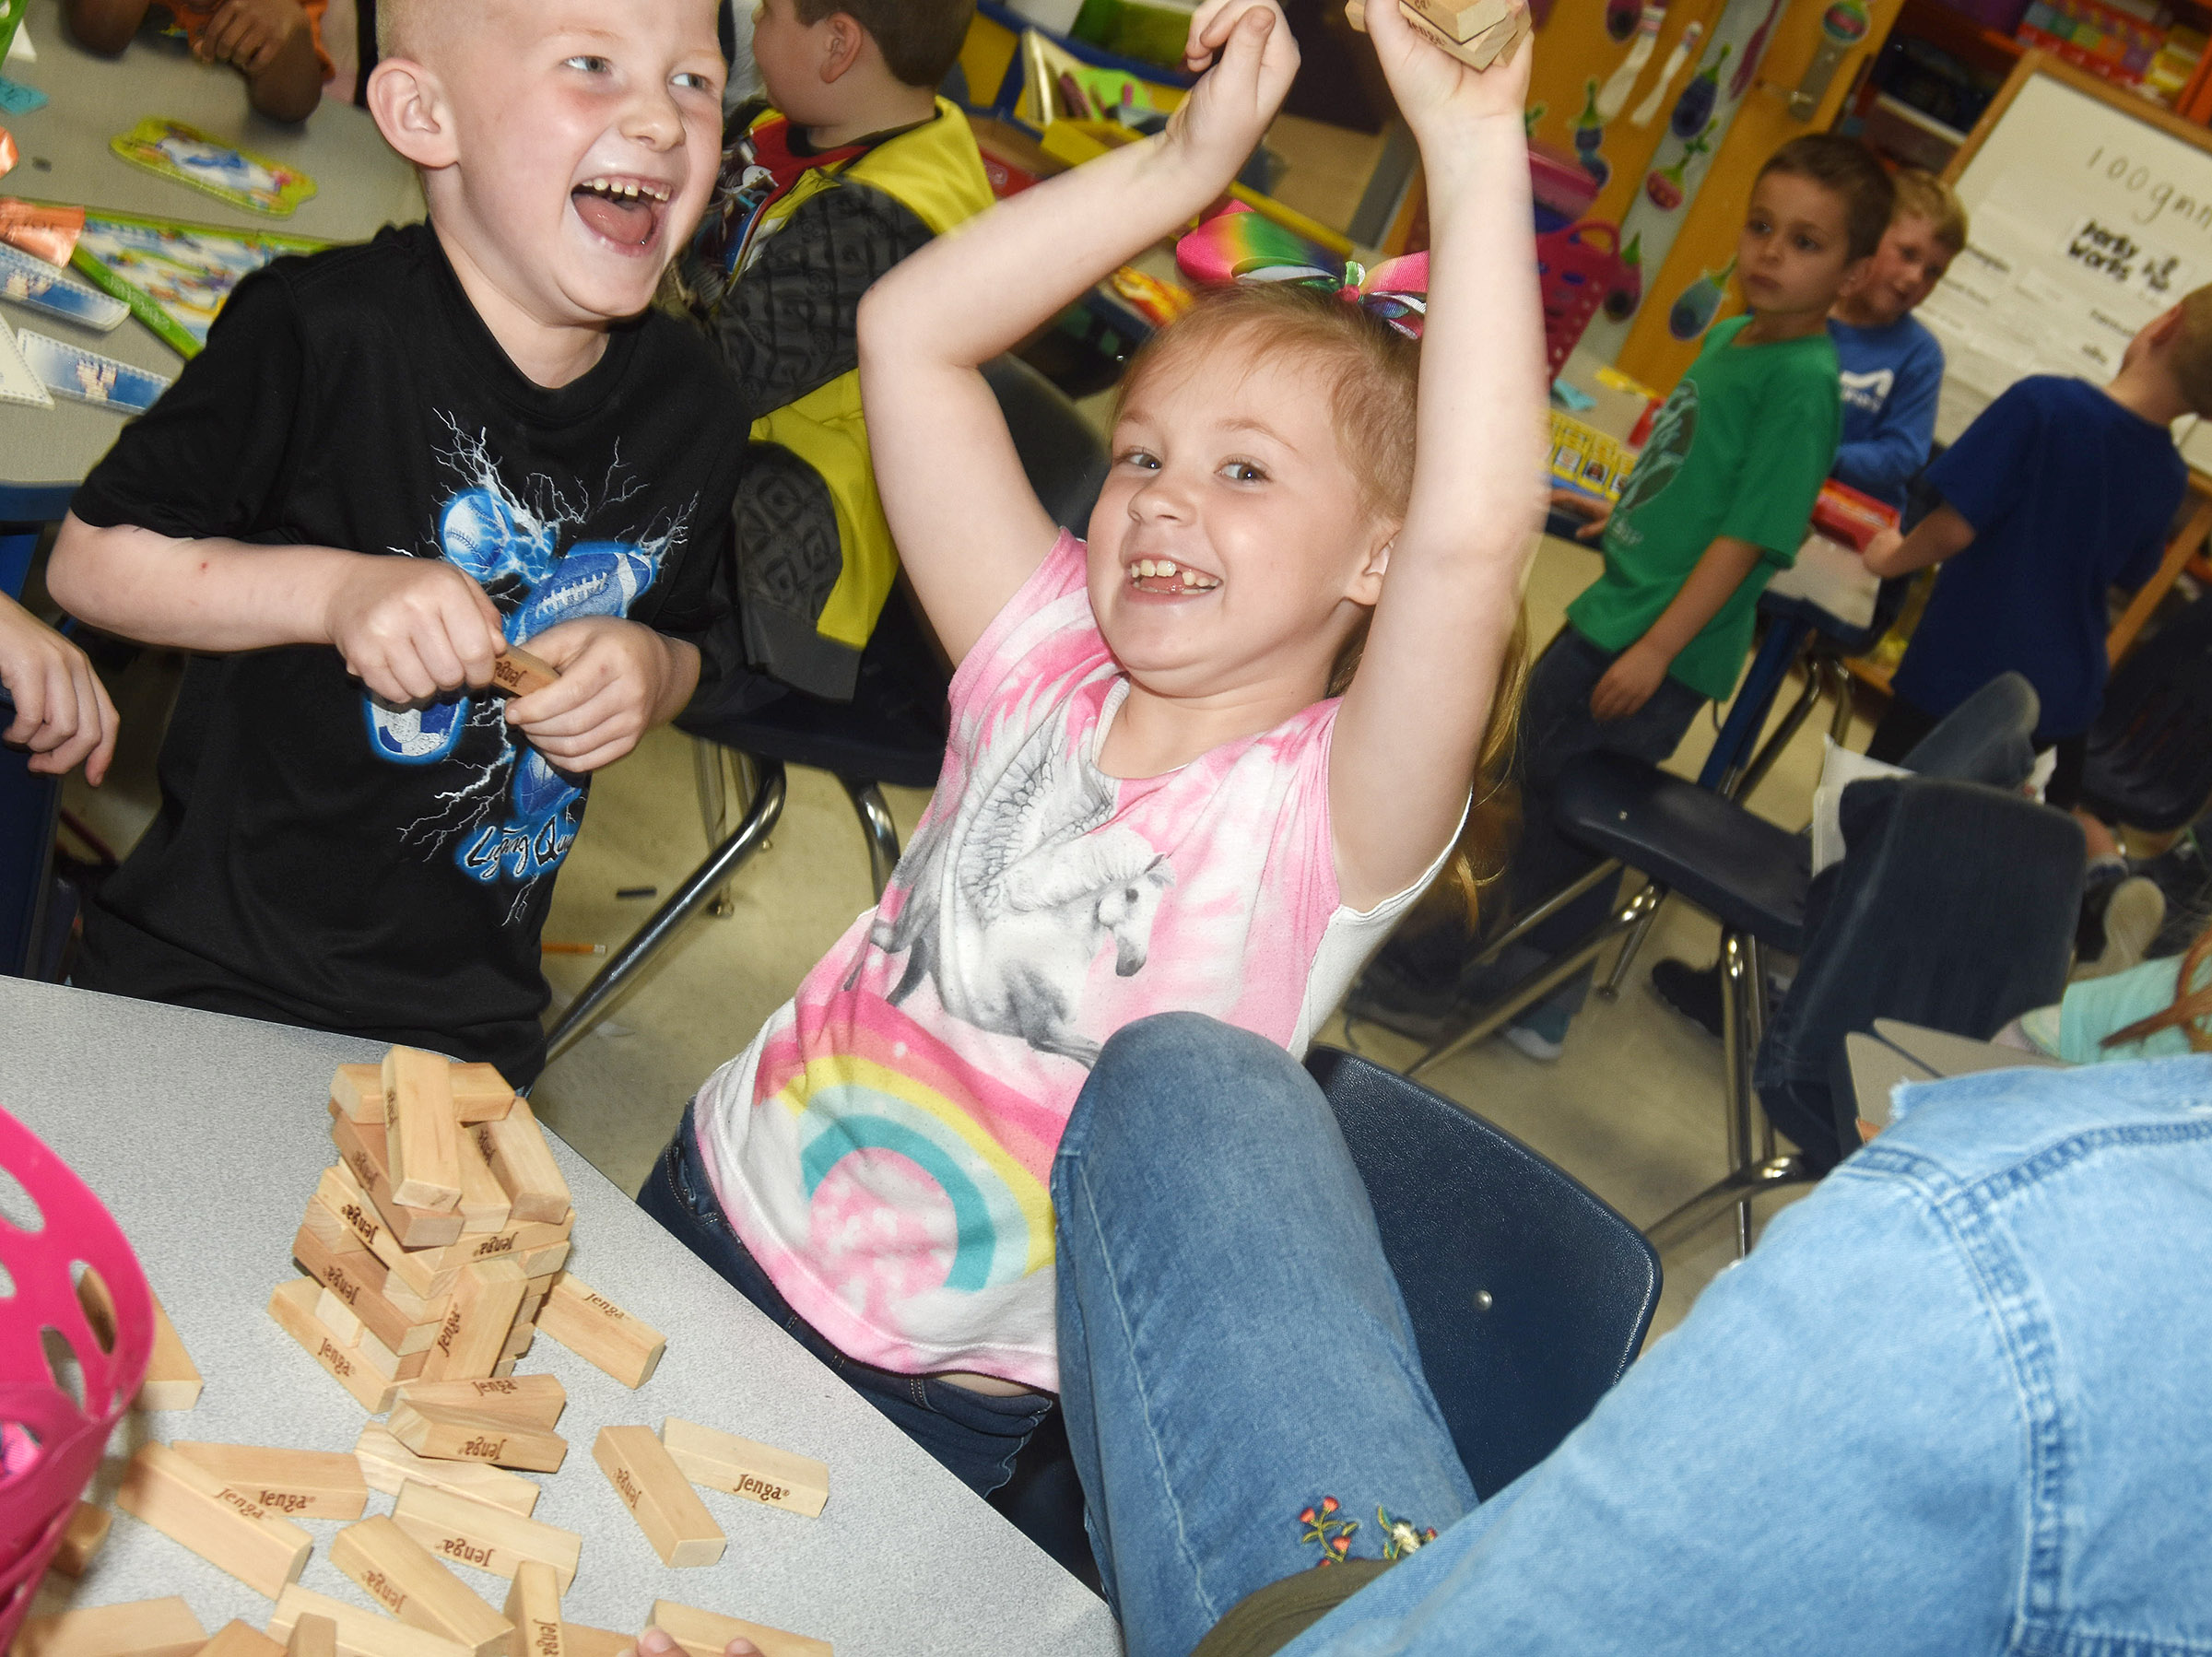 CES first-graders Jayden Maupin, at left, and Ava Caffee laugh as their Jenga pieces fall during a game with teacher Luci Shofner.